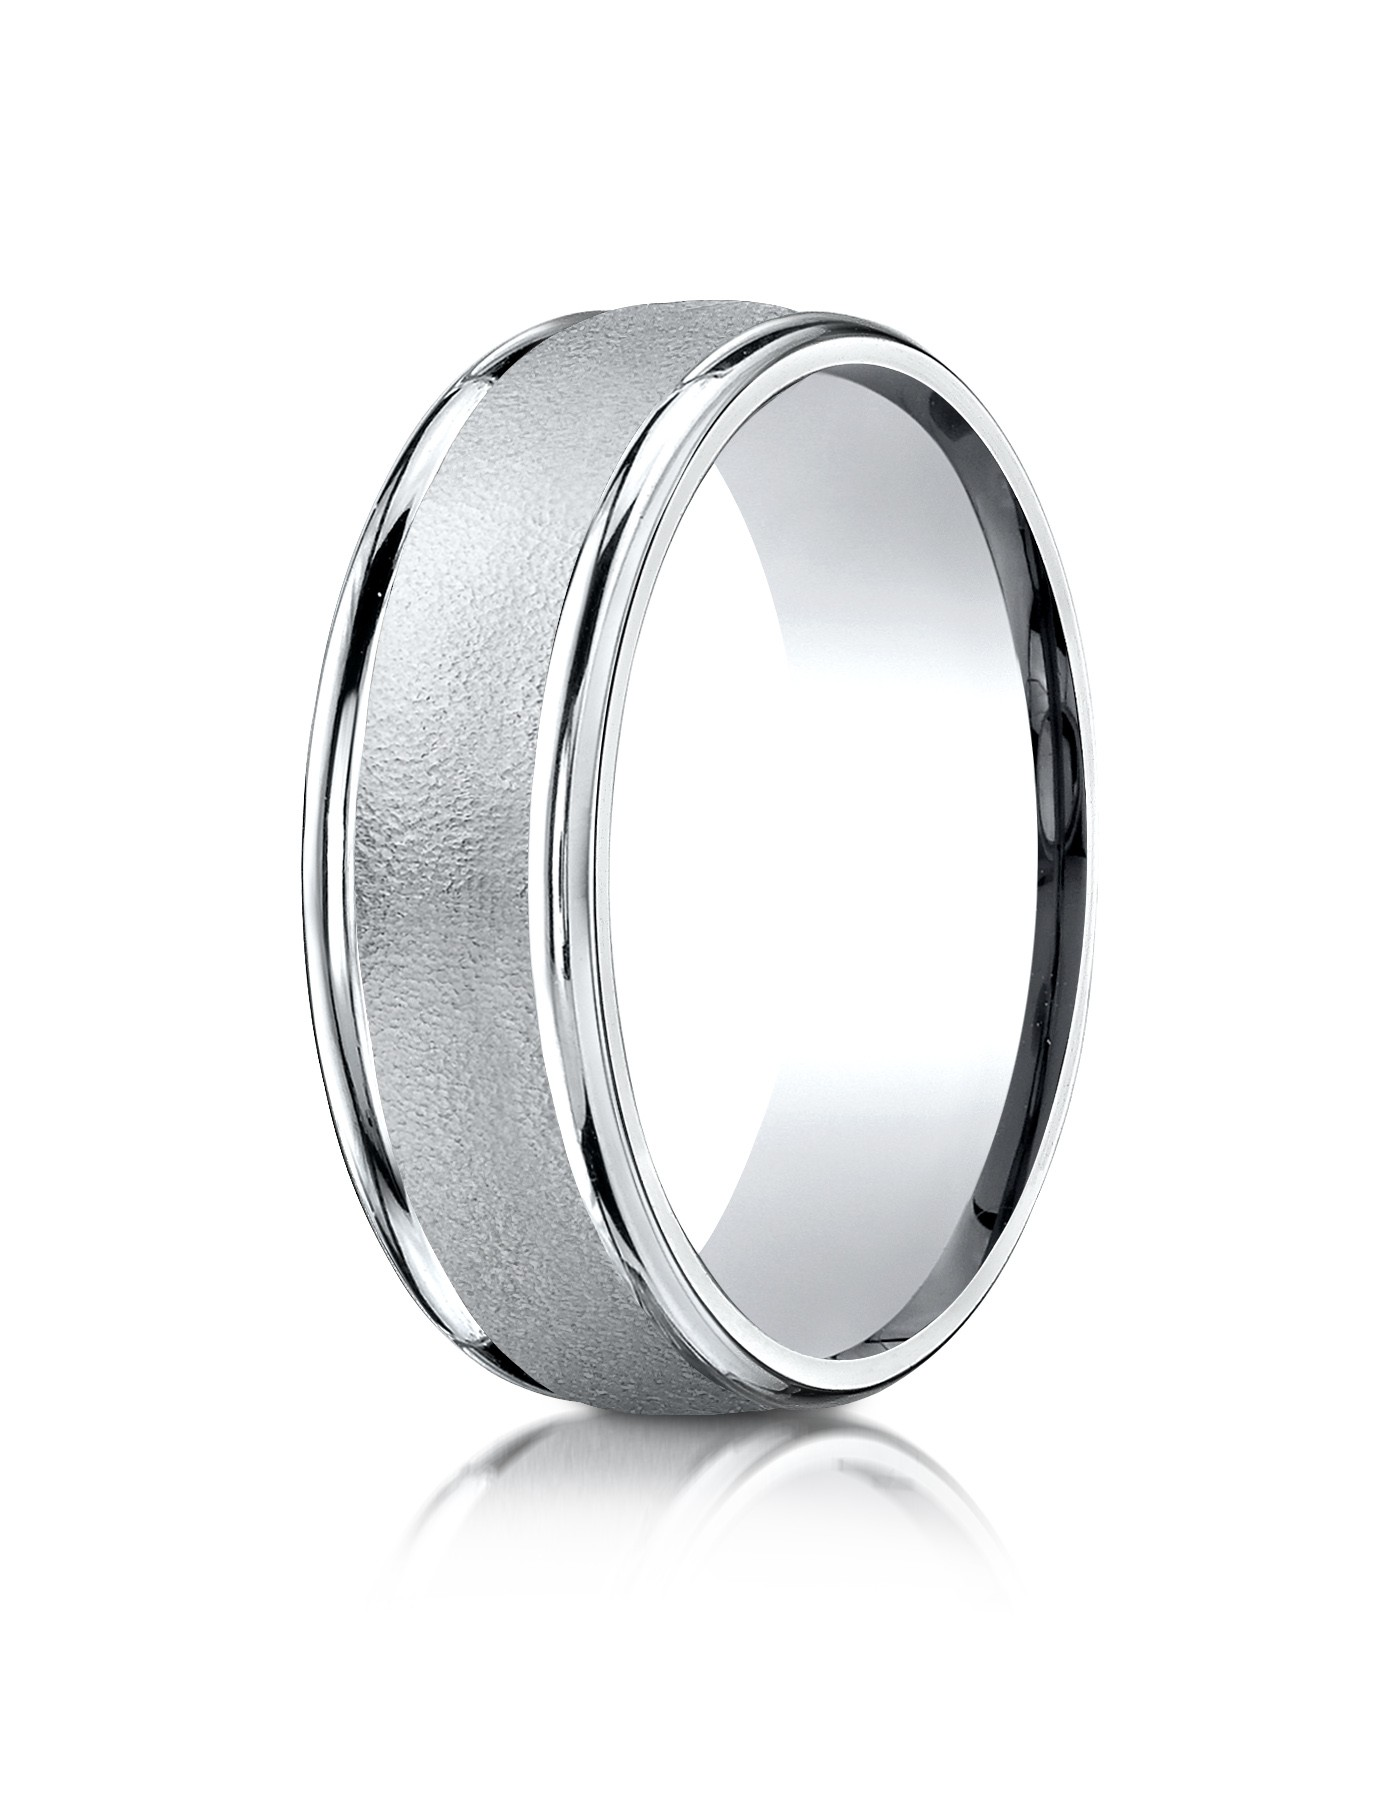 14k White Gold 7mm Comfort-fit Wired-finished High Polished Round Edge Carved Design Band